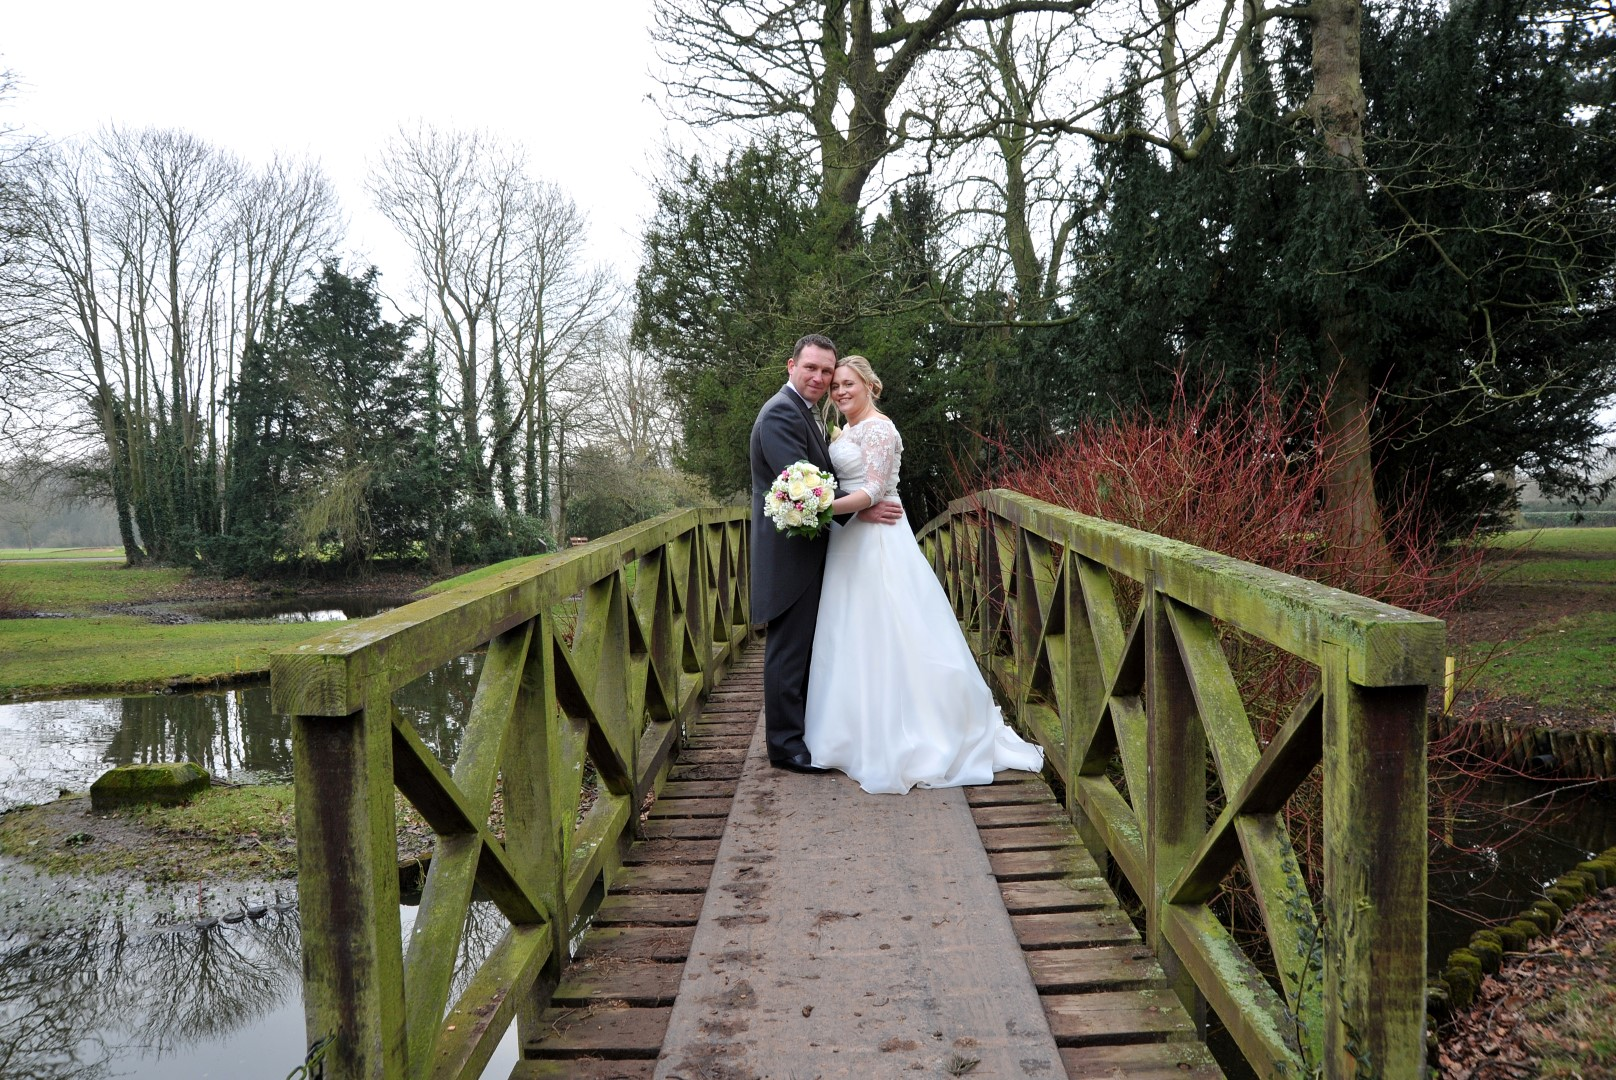 weddings-at-aldwark-bridge